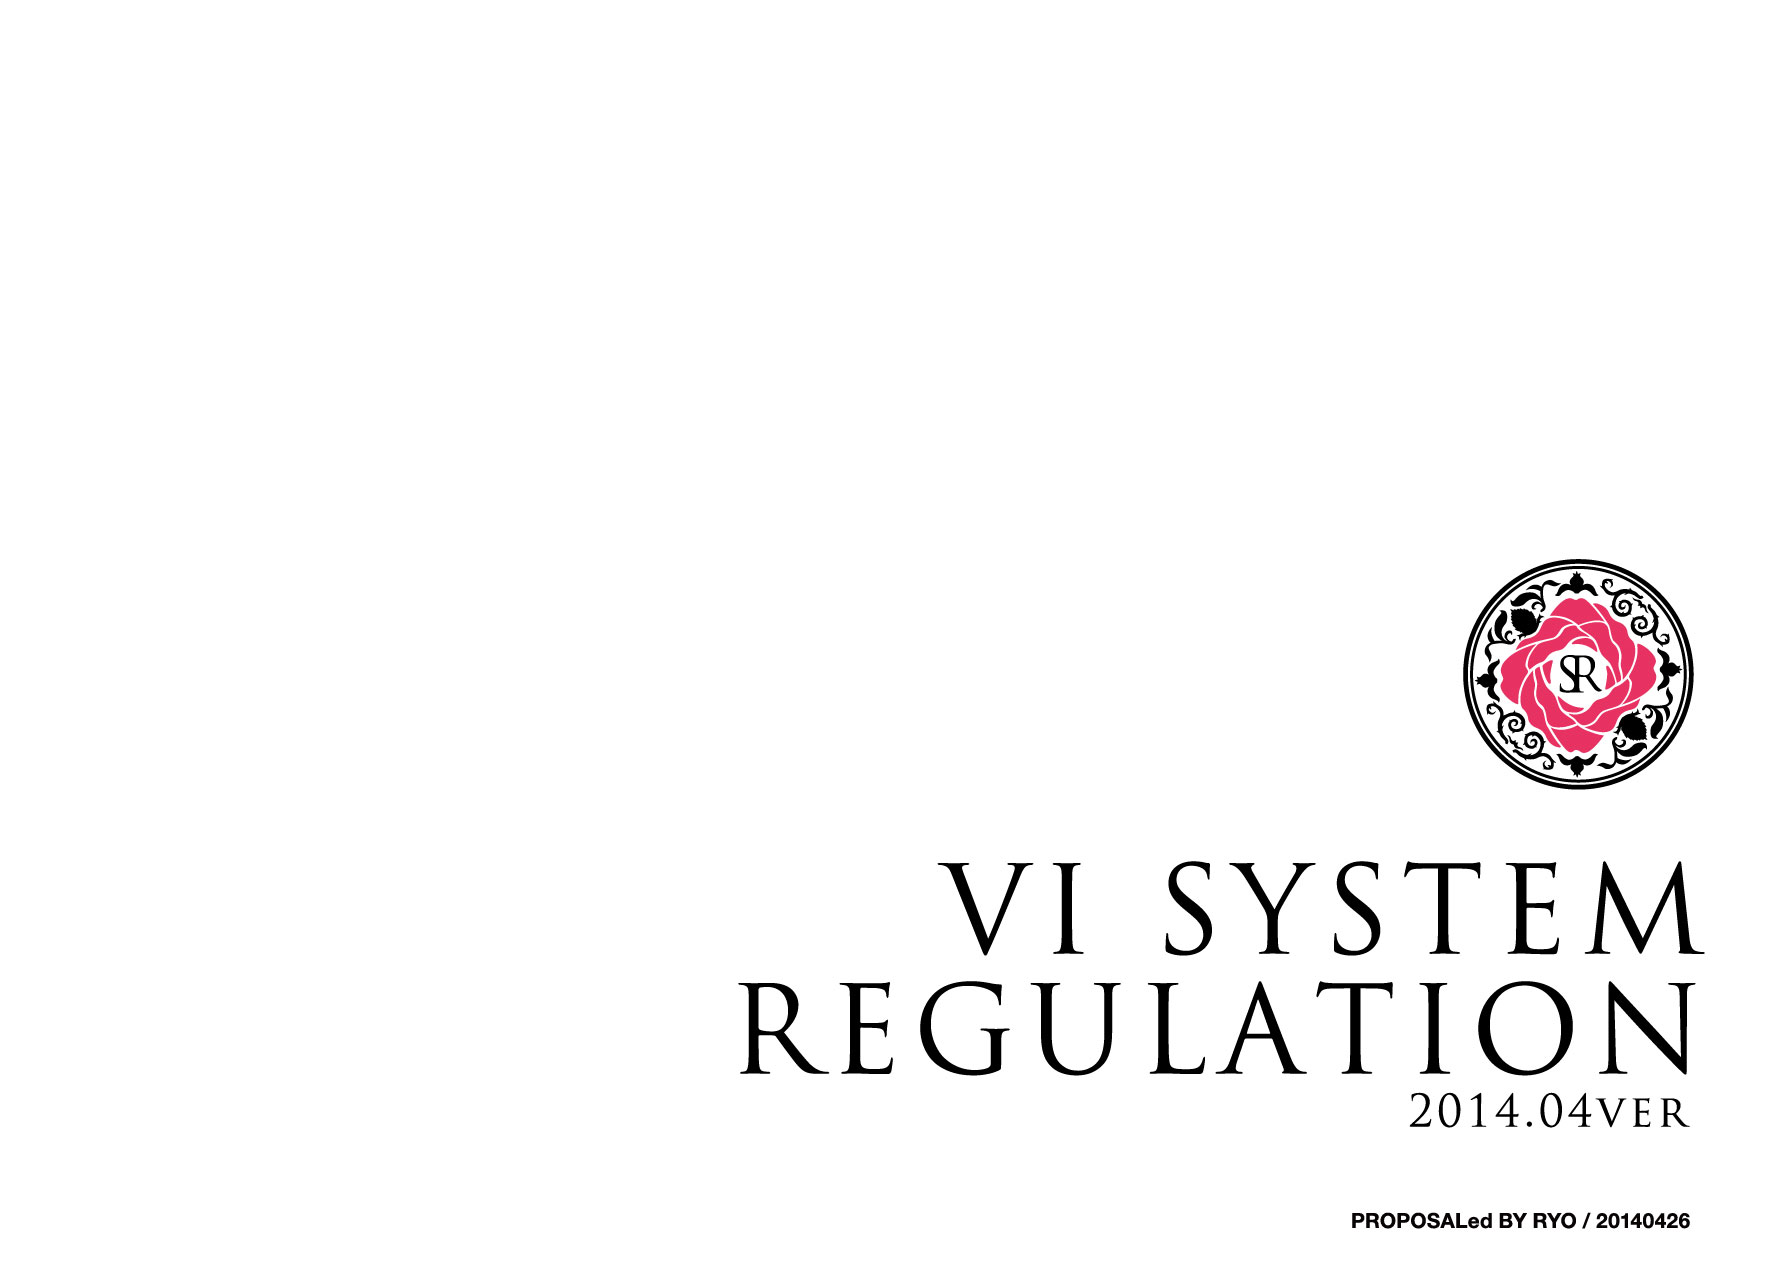 Shanghai Rose : VI SYSTEM REGULATION